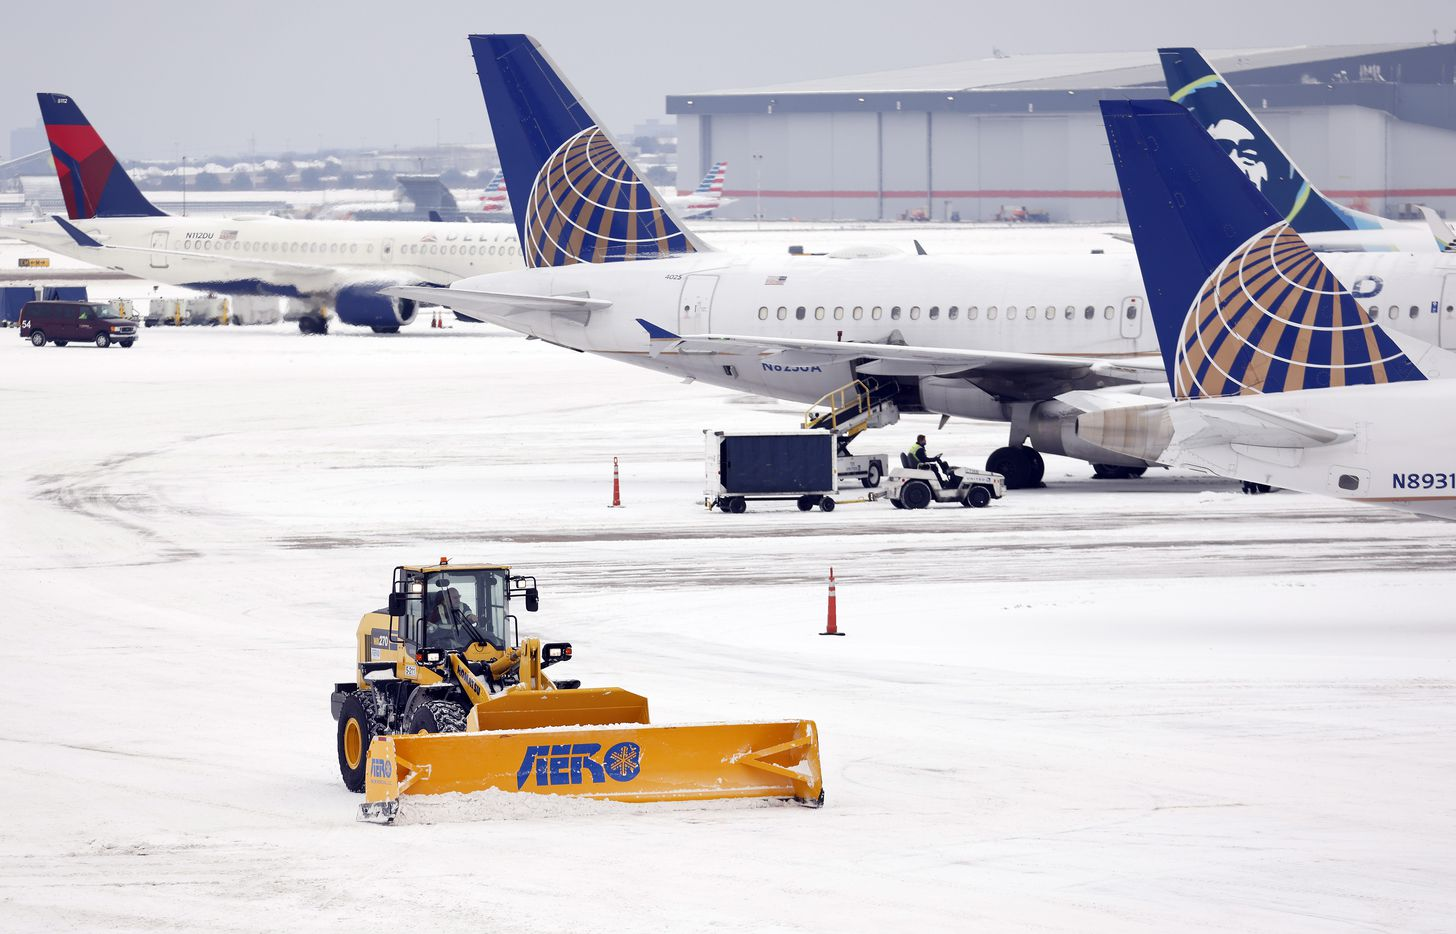 Crews use plows to clear snow from the Terminal B tarmac at Dallas-Fort Worth International Airport, Wednesday, February 17, 2021. Another round of snow fell overnight at the airport.